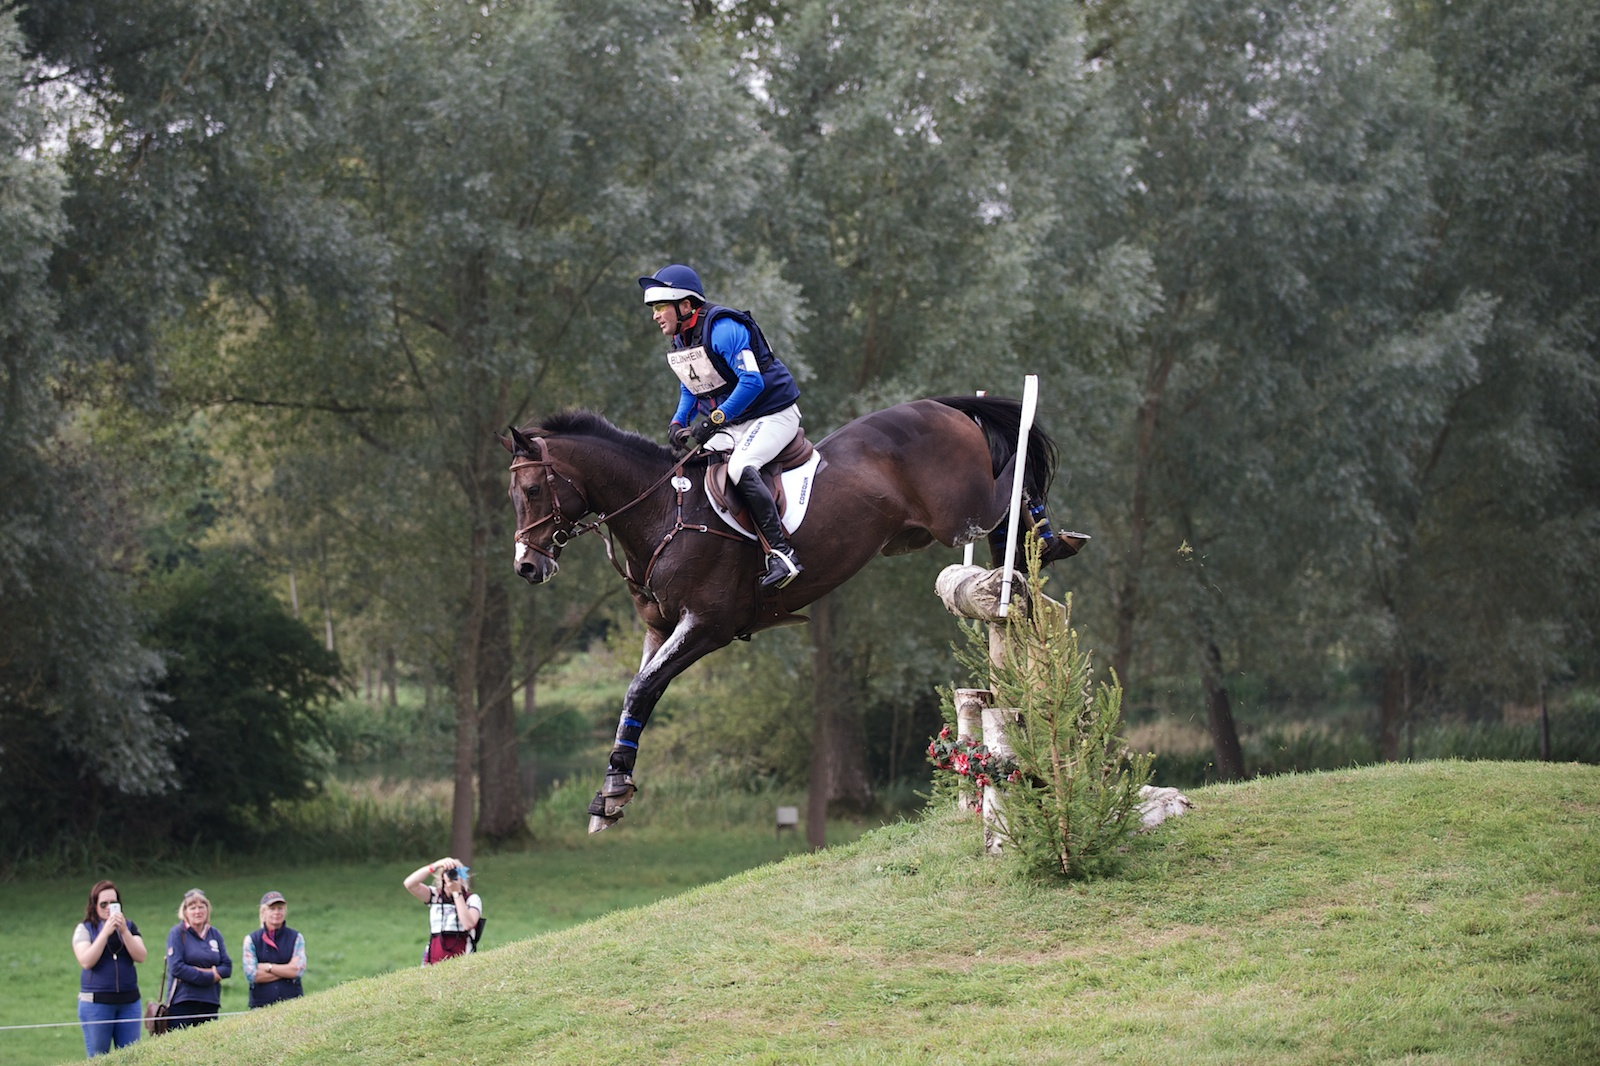 Phillip Dutton & Fernhill Cubalawn Jumped Their Way From 20th To 9th On Cross Country.